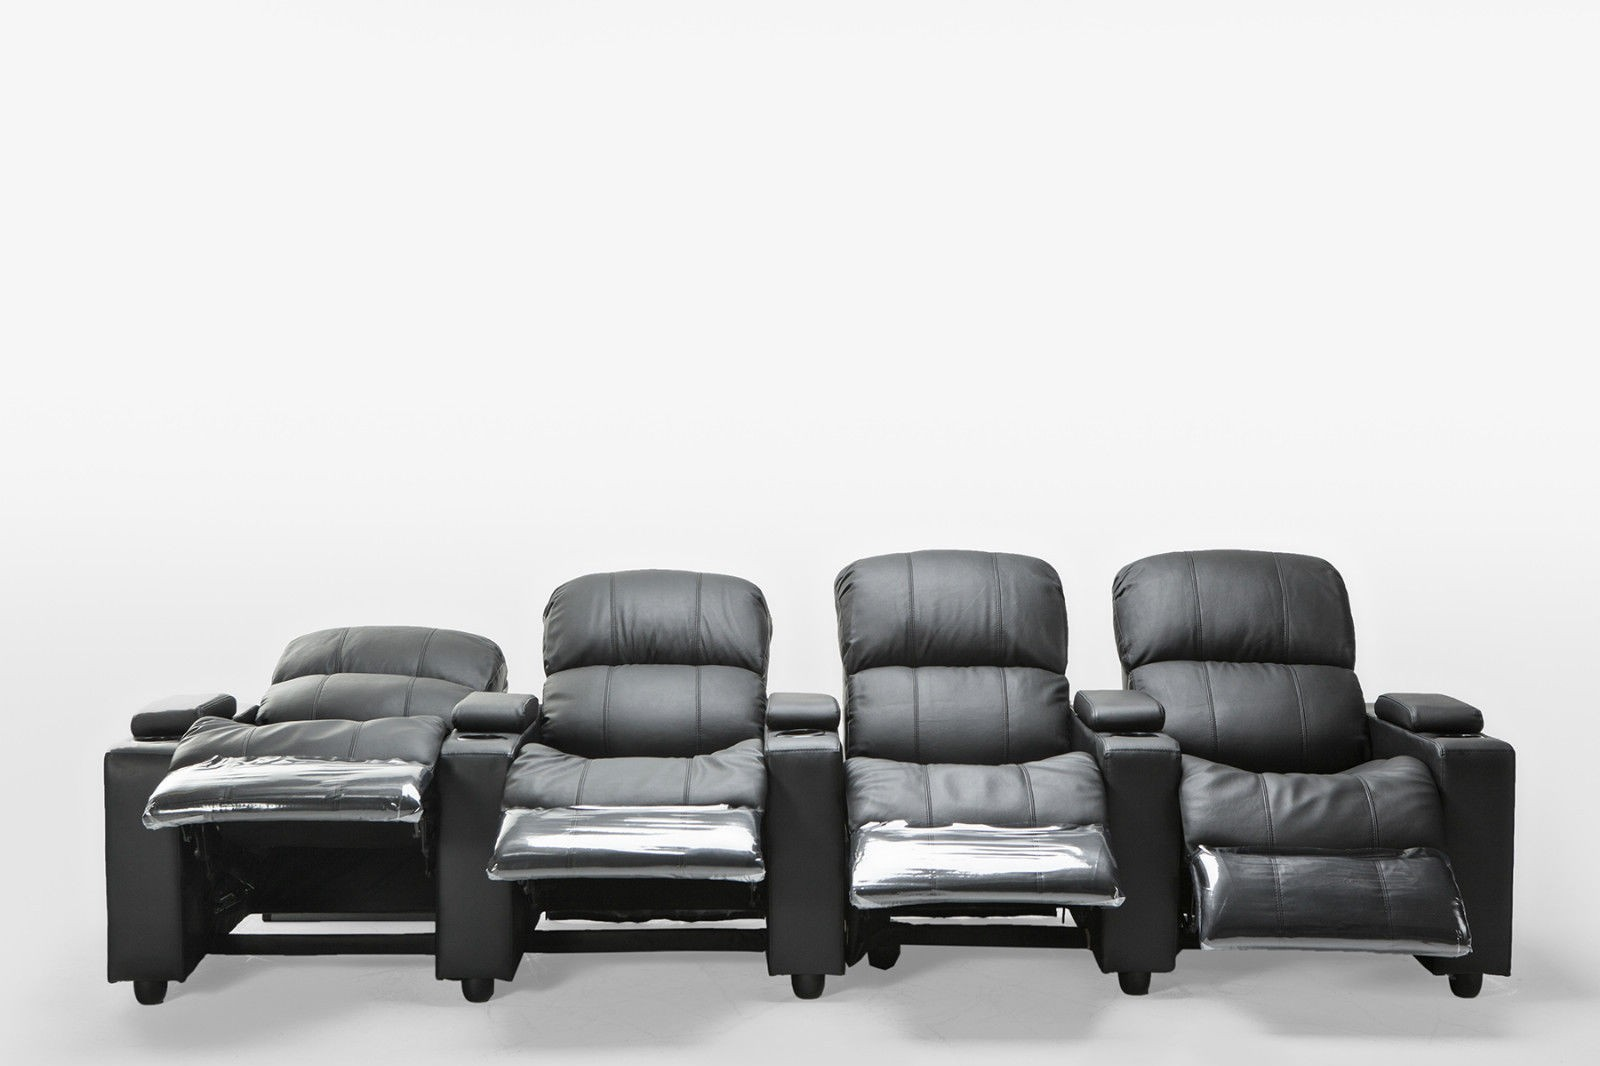 2 Seater Recliner Lounge Sophie Black Leather 4 Seater Home Theatre Recliner Lounge